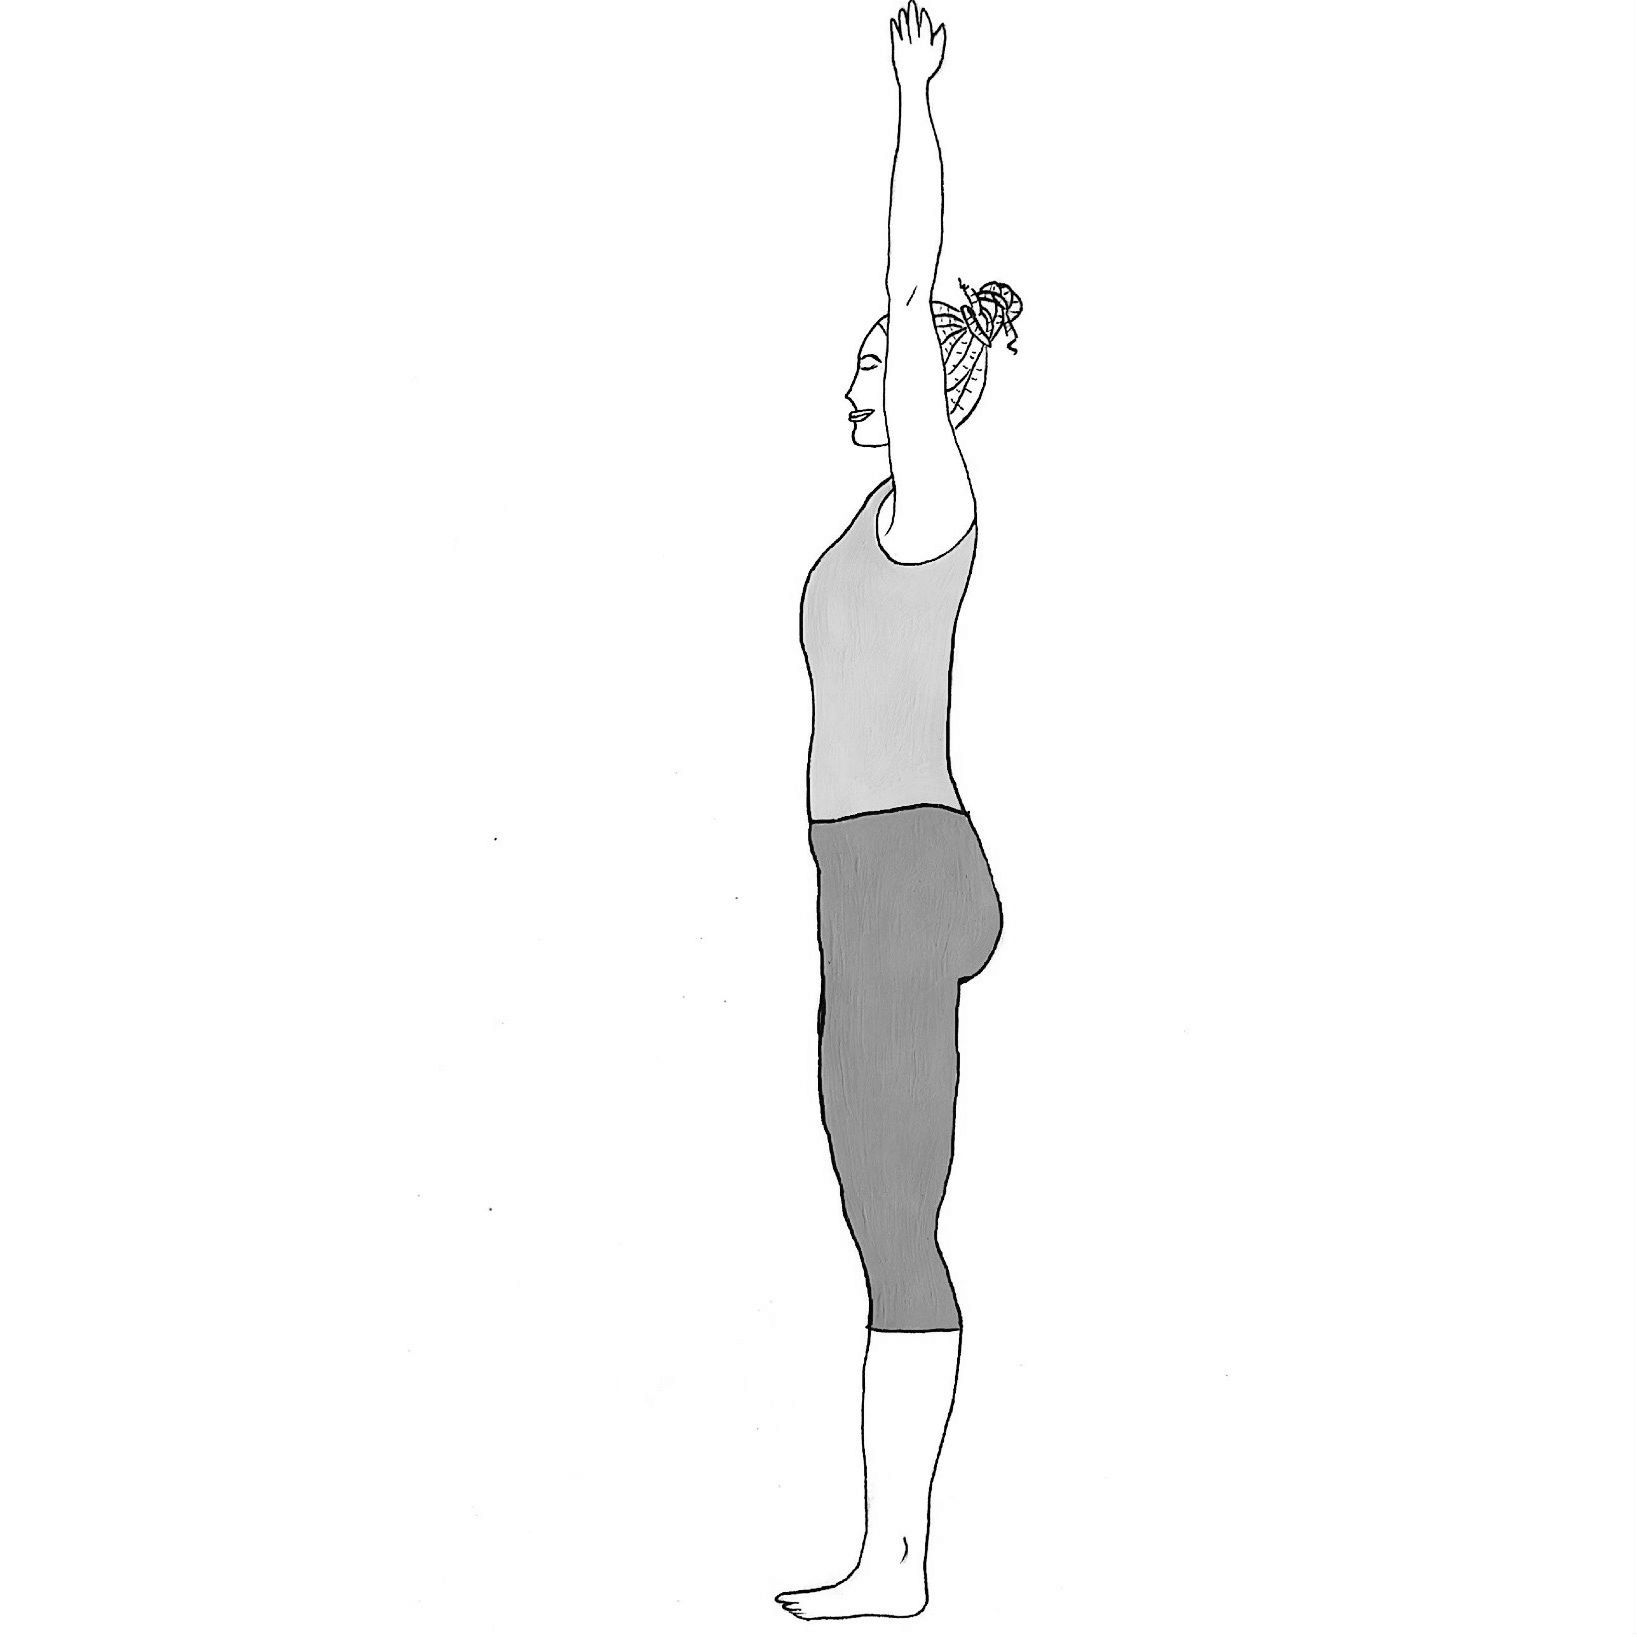 Upward Salute - Urdhva Hastasana